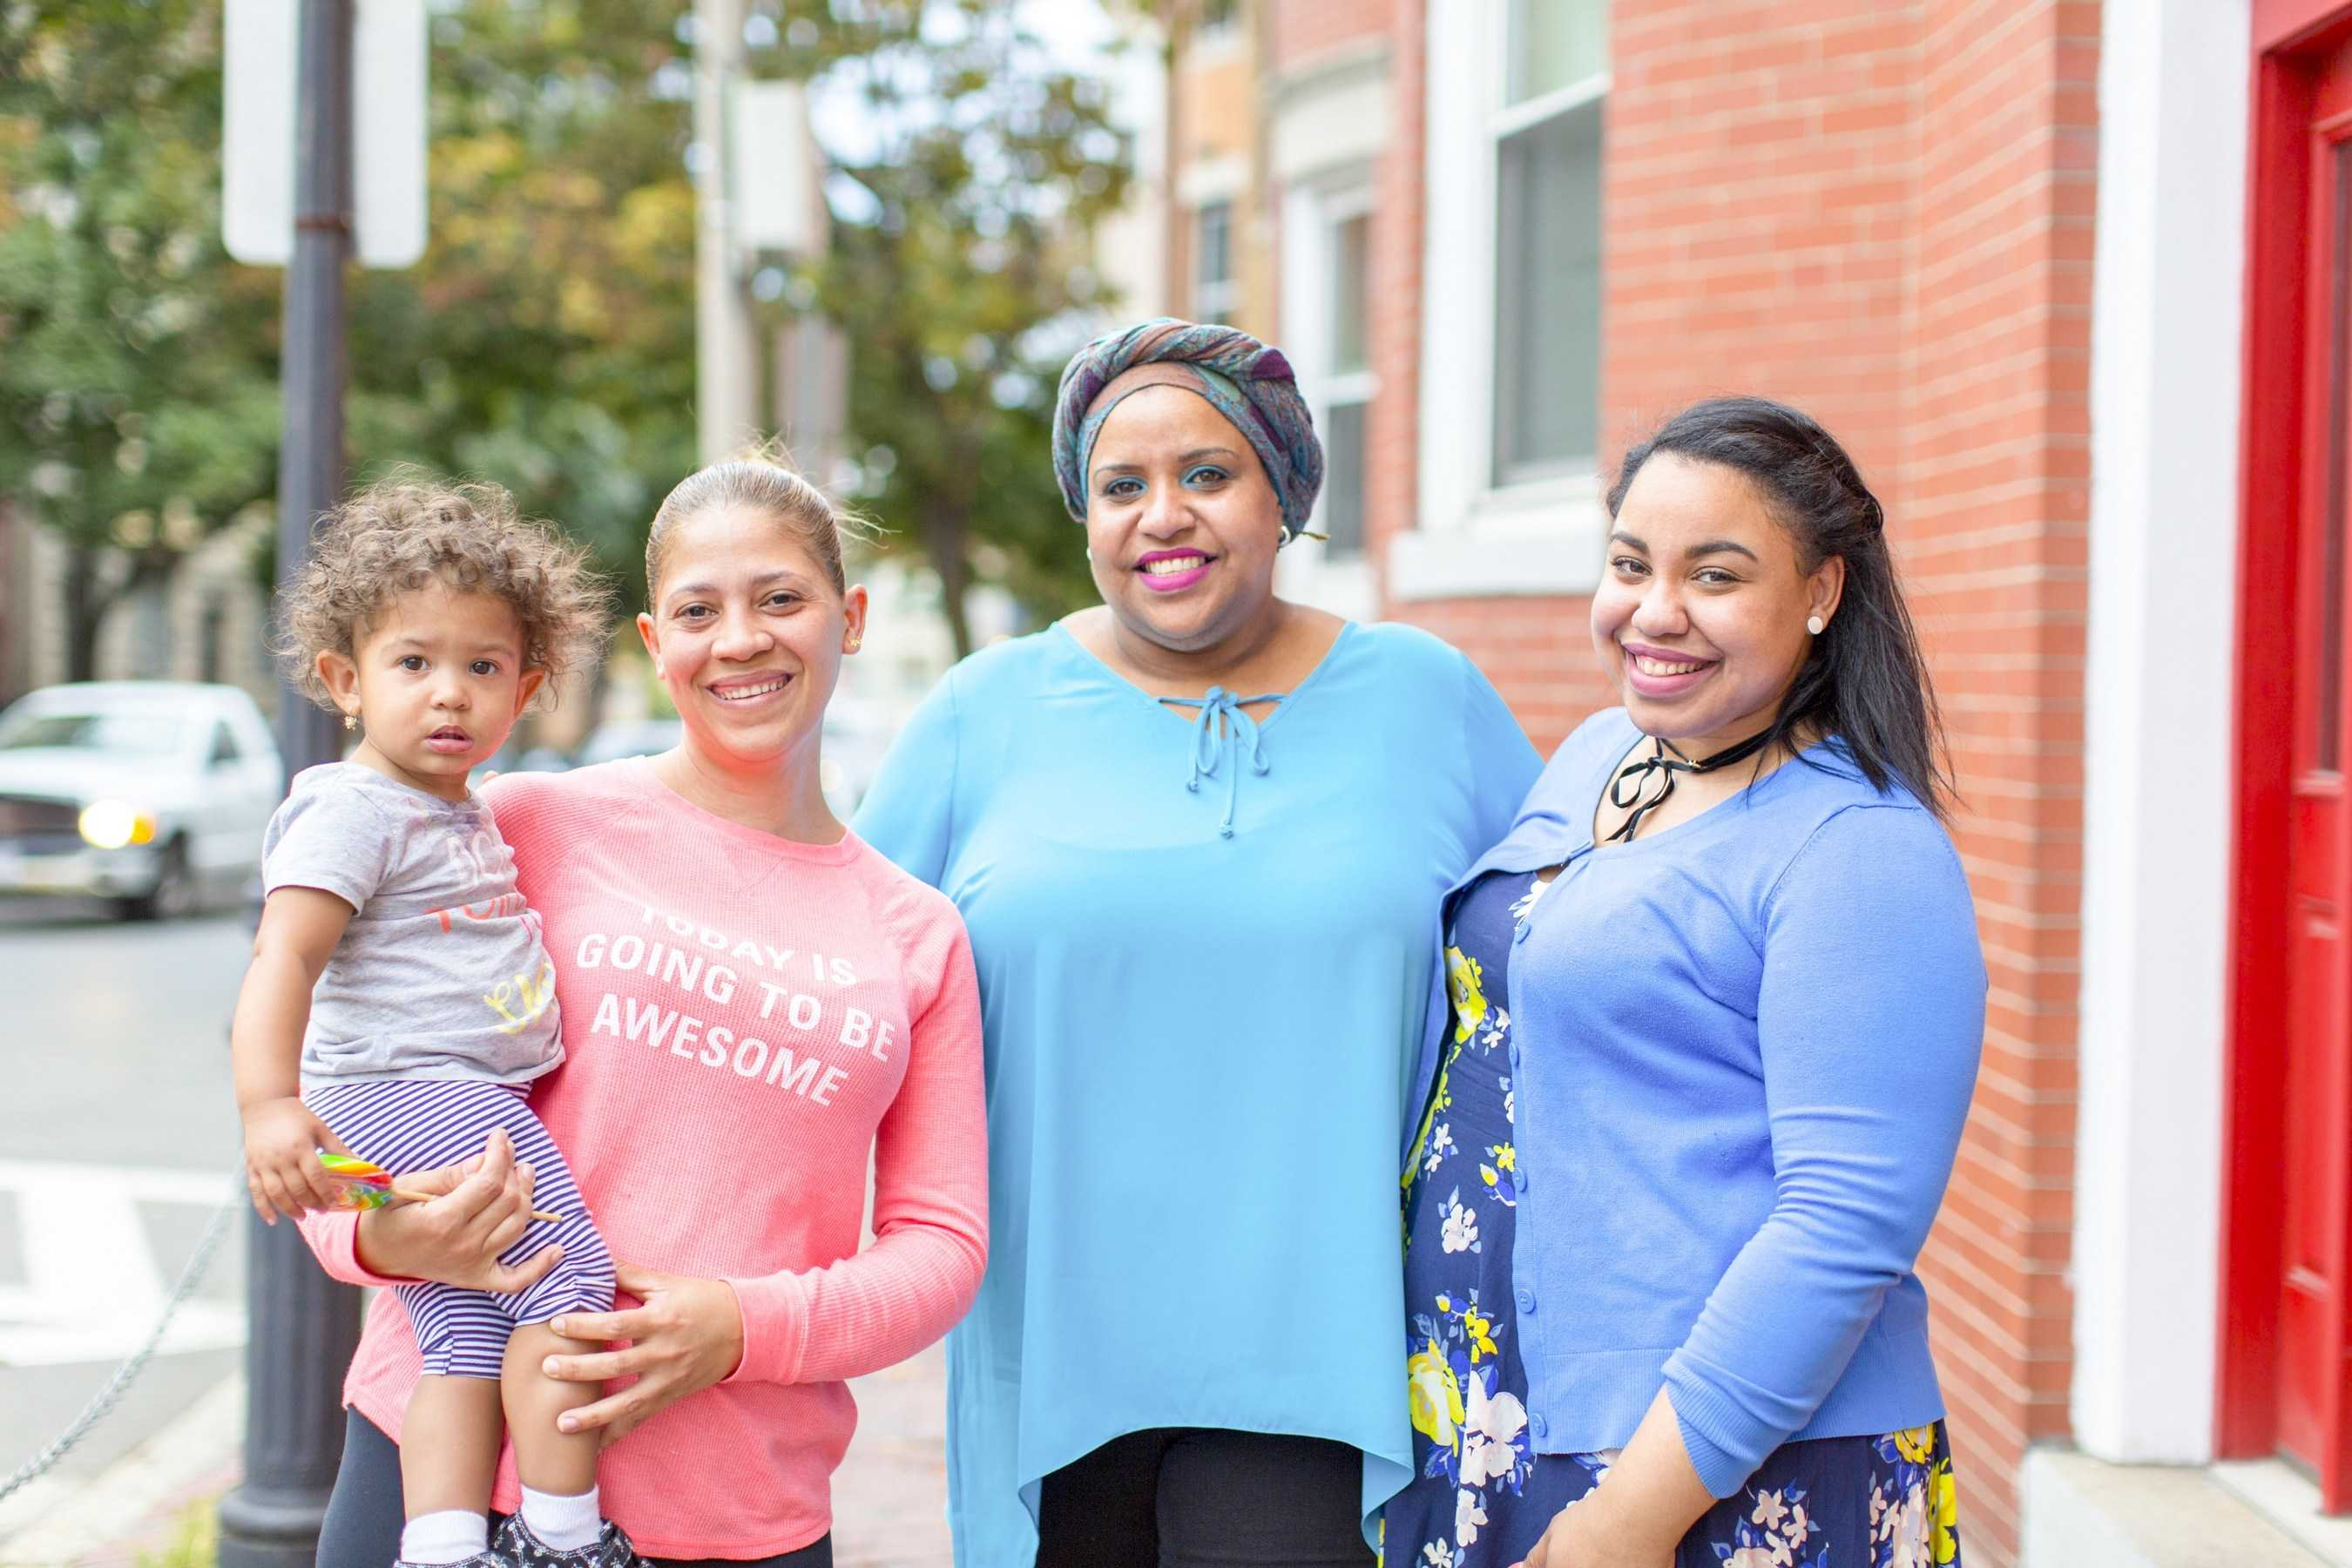 Grameen America Hits $1 Billion Milestone in Microloans to Low-Income Women [News]